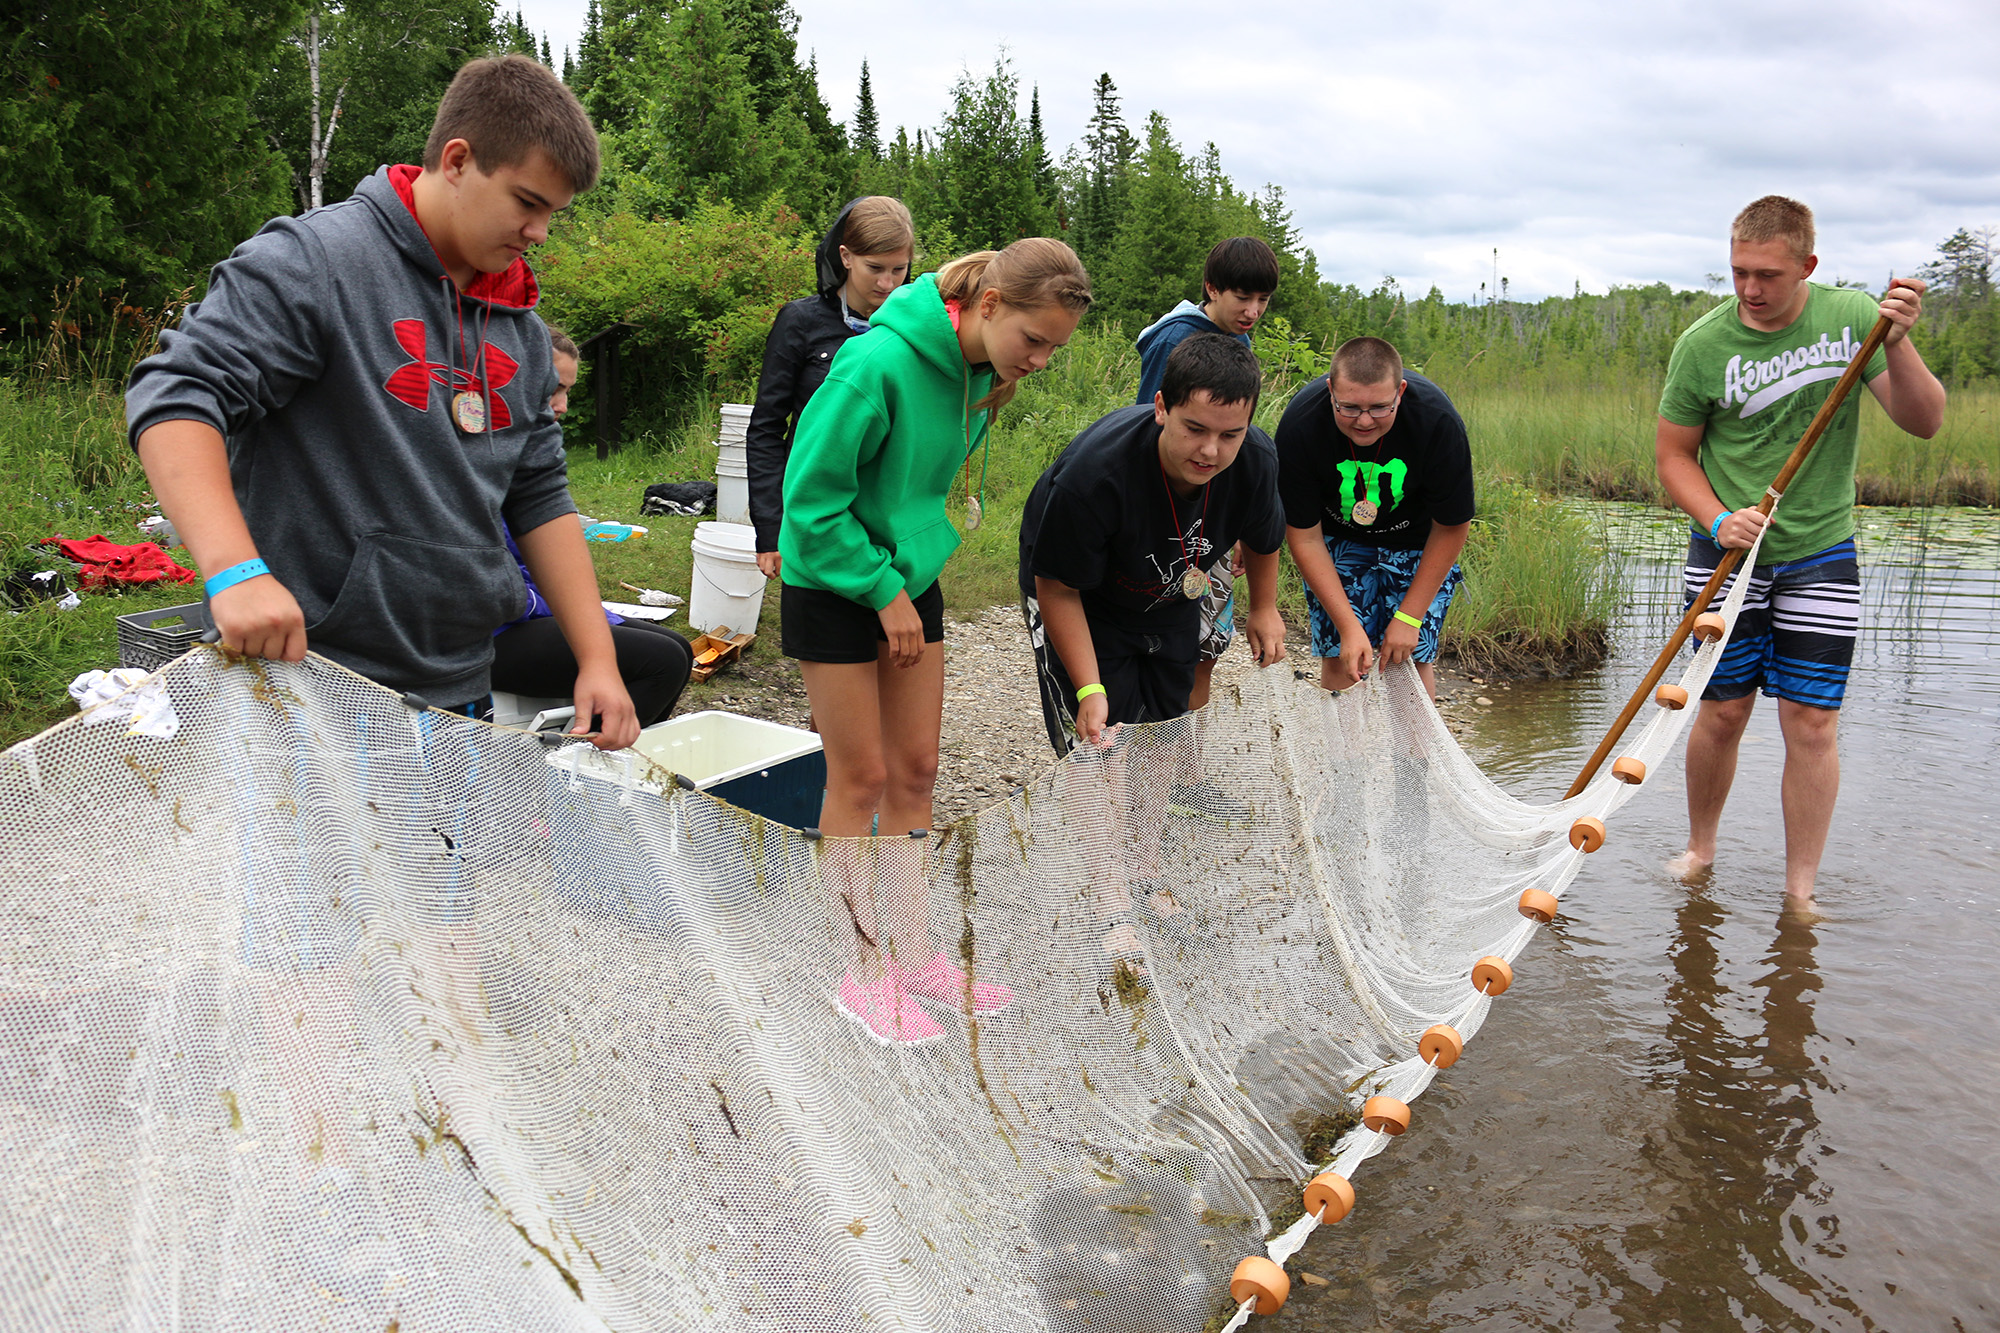 catching fish in a net at 4H Great Lakes Natural Resources Camp